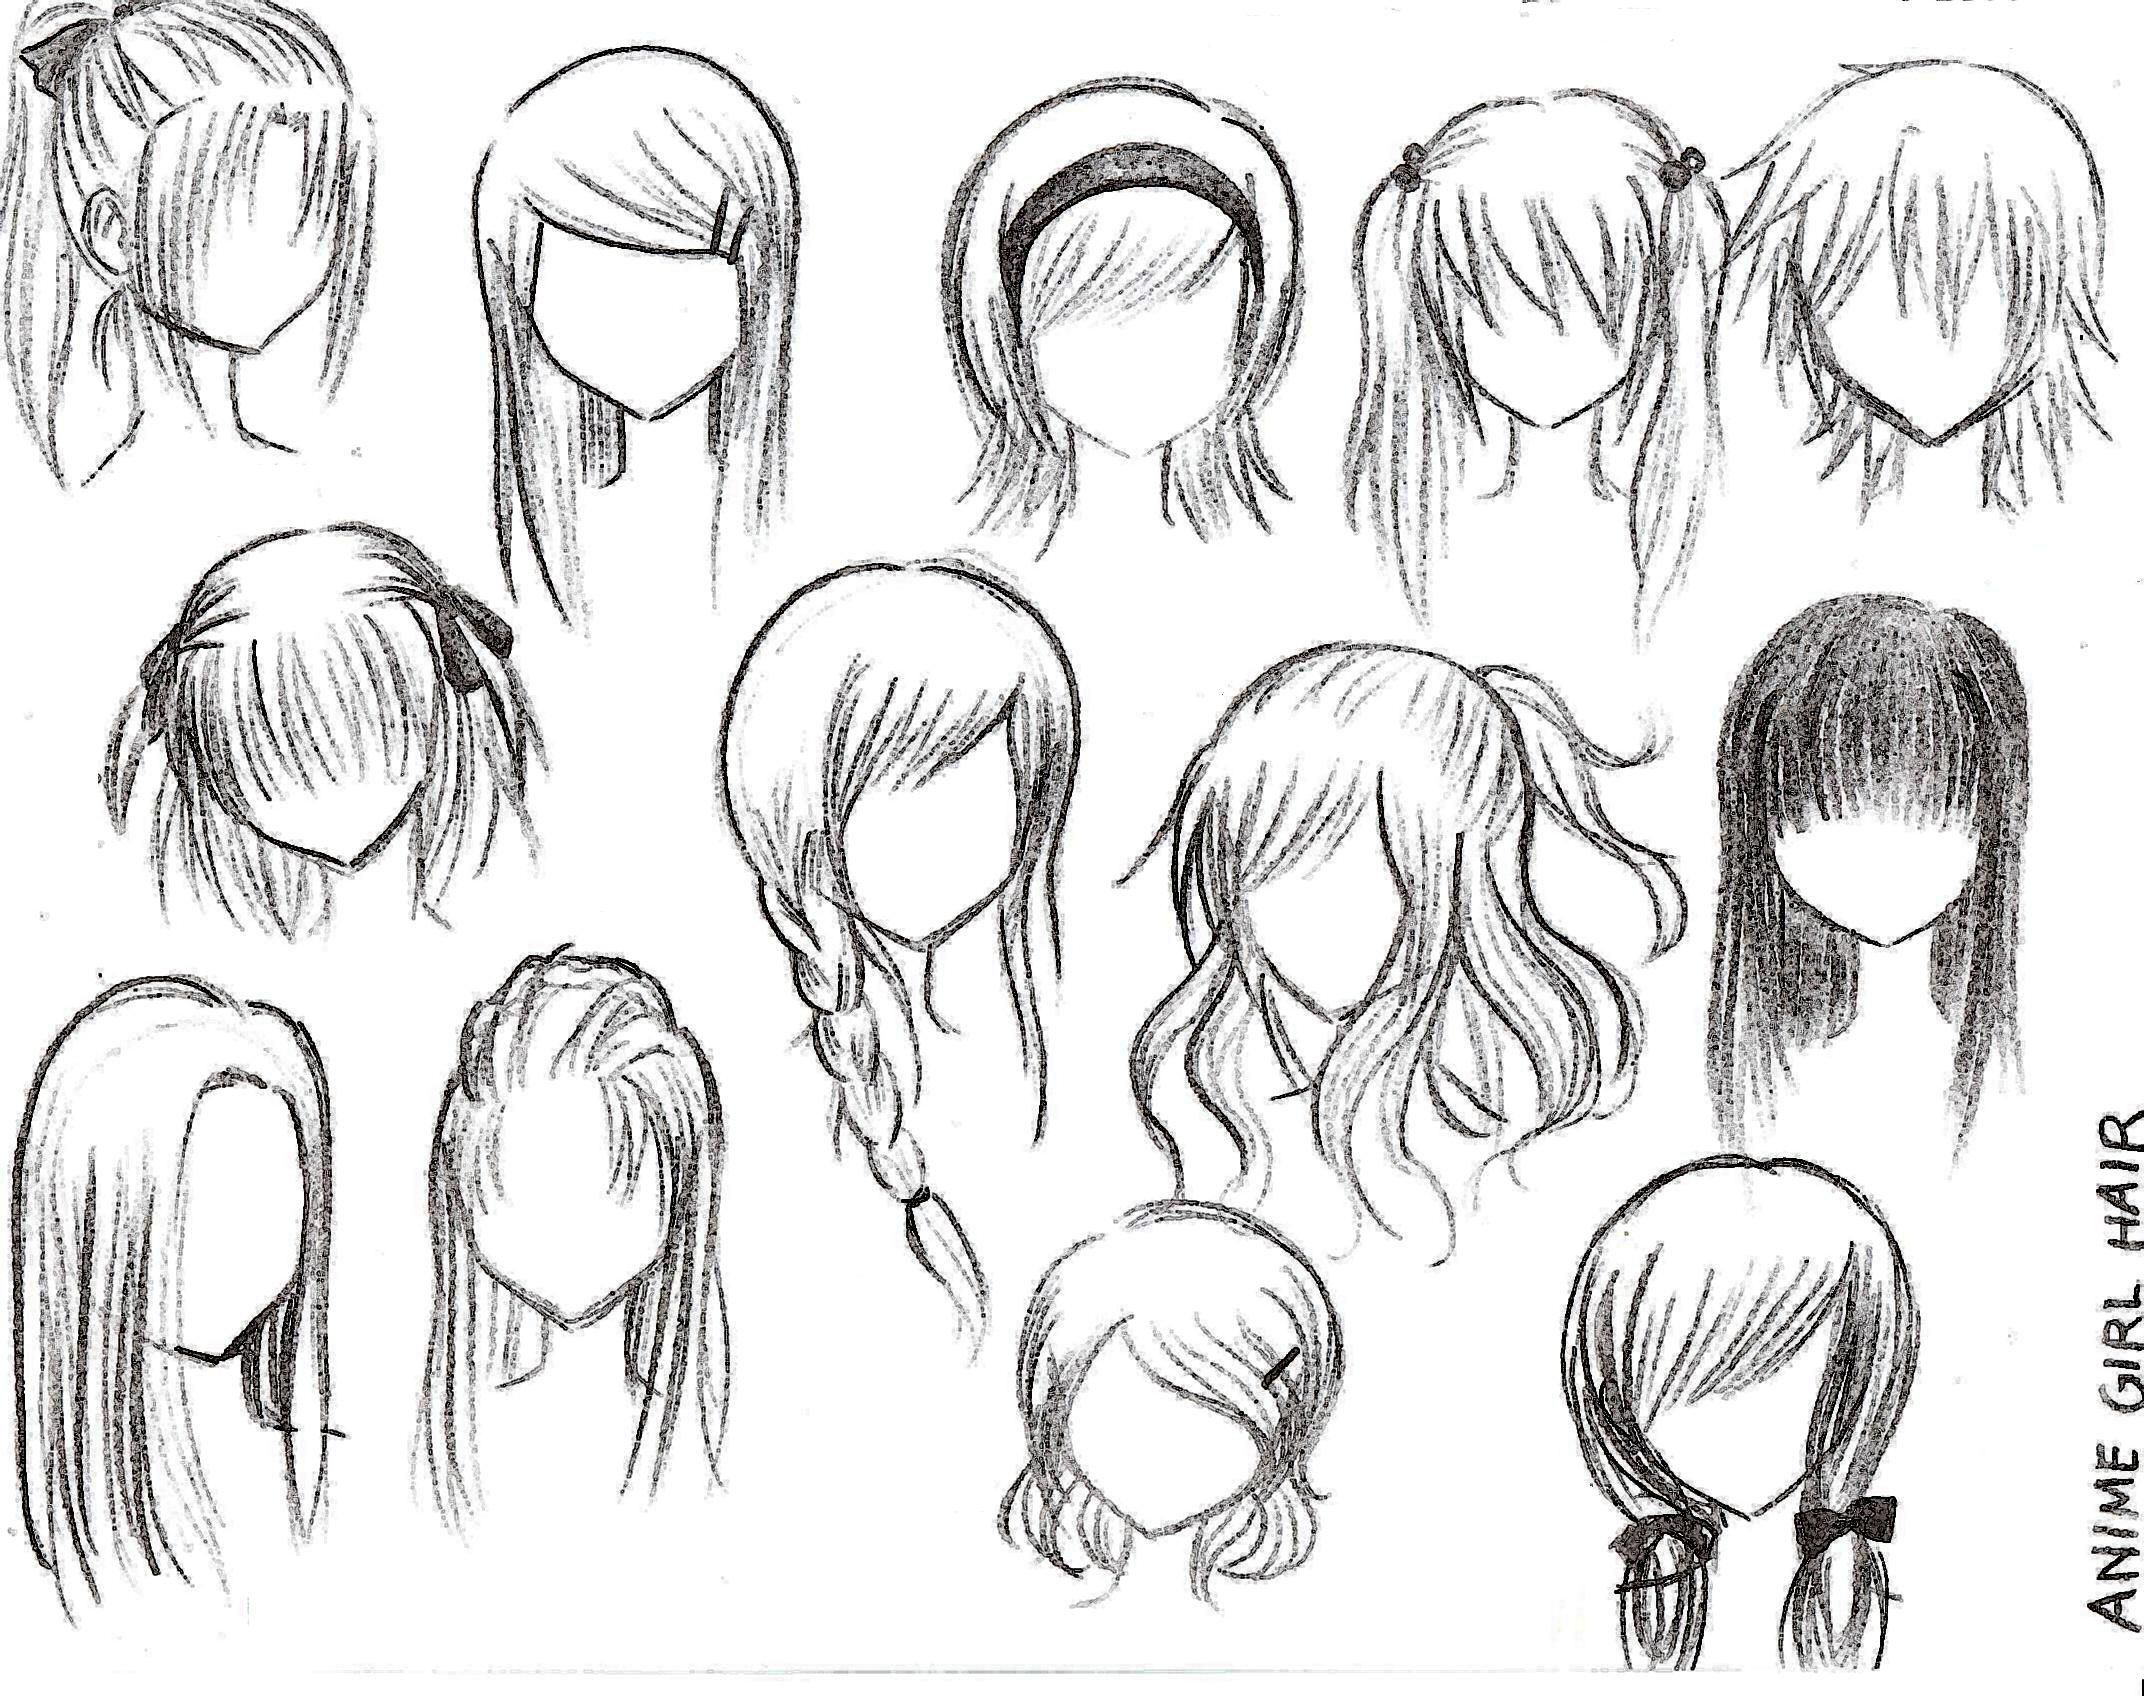 Anime Hairstyles For Girls Anime Girl Hairstyles on